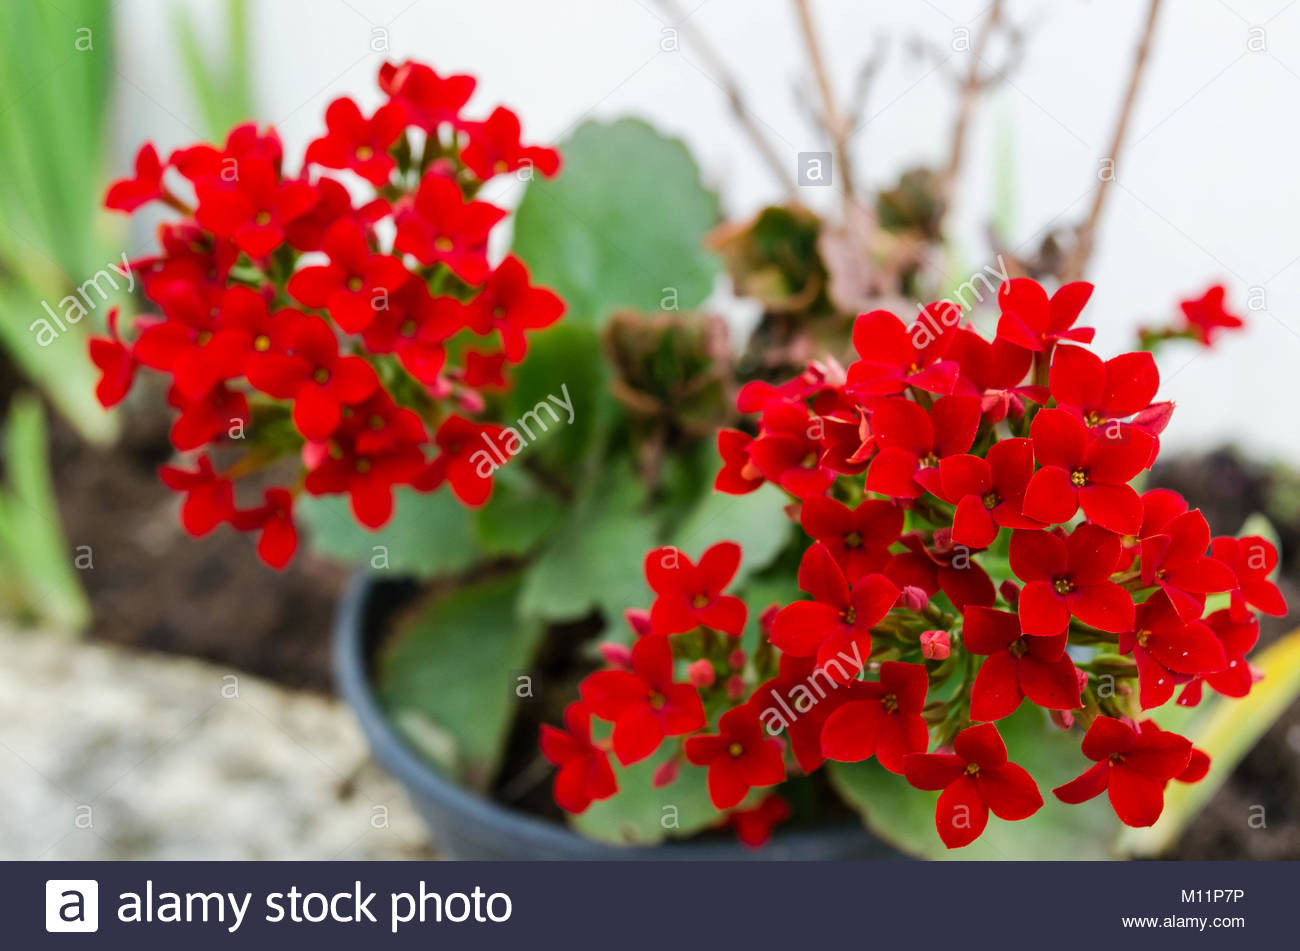 Red Christmas Flower Names  Flaming Katy Stock s & Flaming Katy Stock Alamy